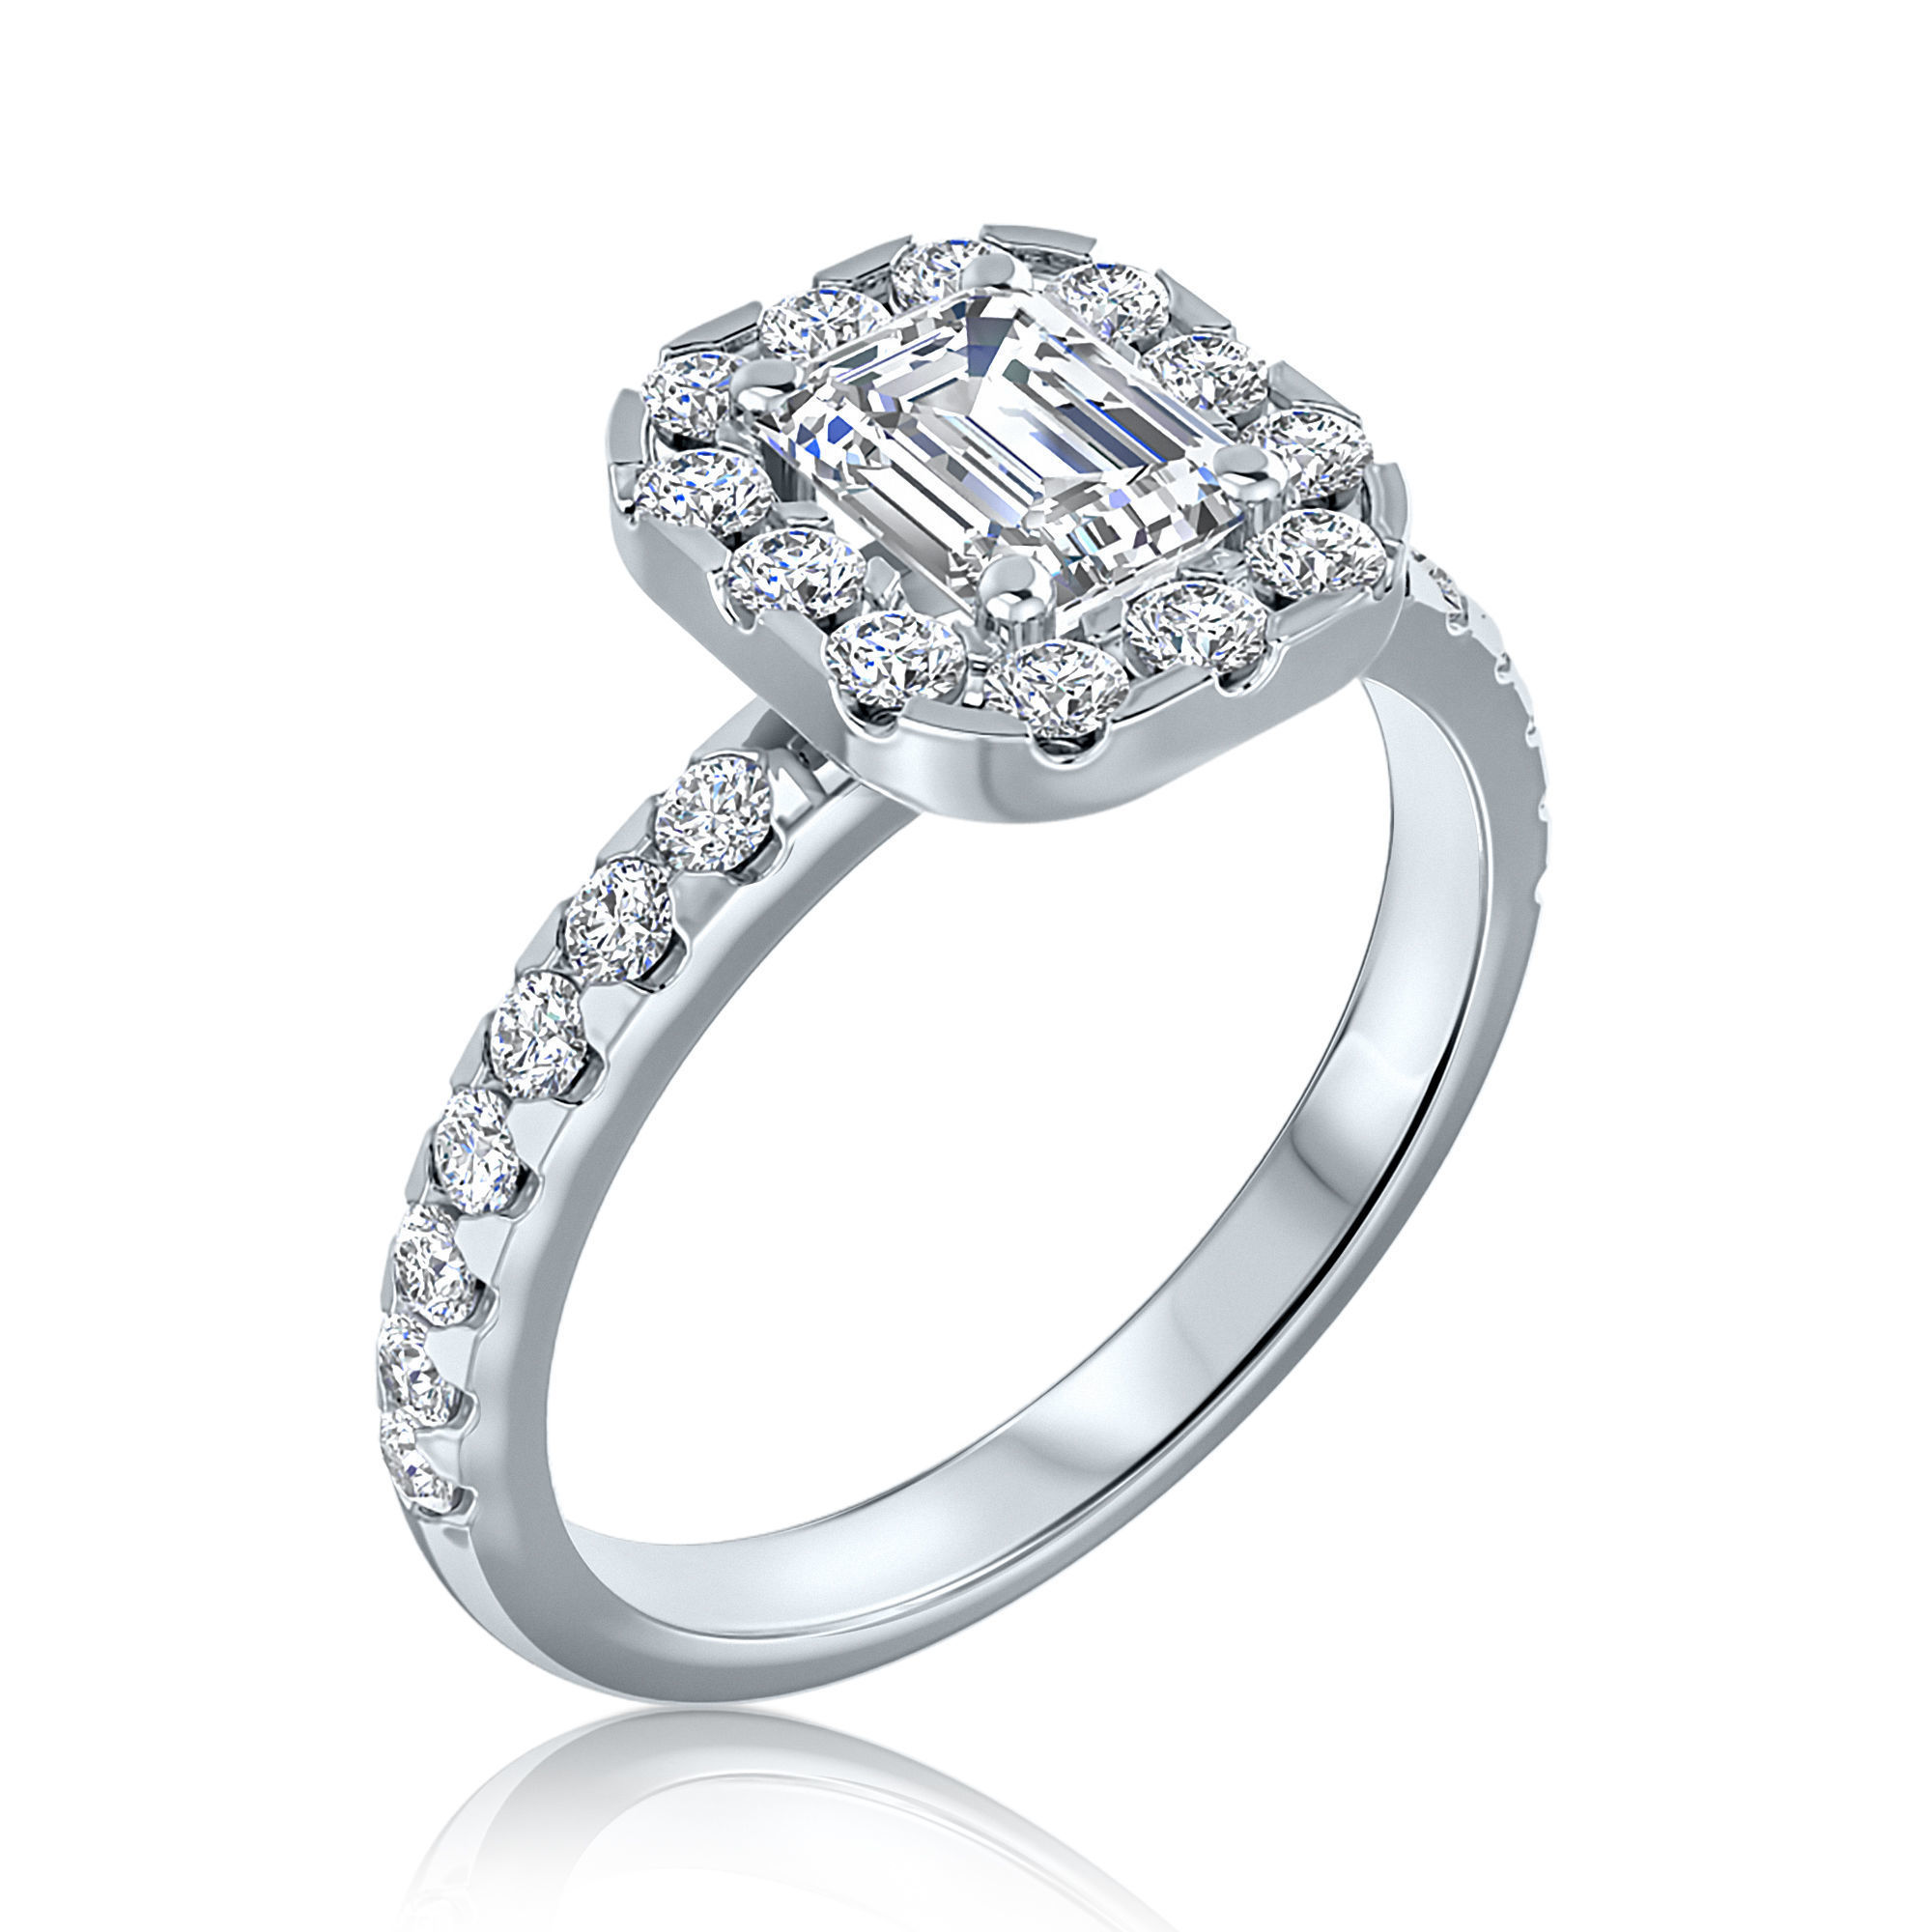 HELO ENGAGEMENT RING